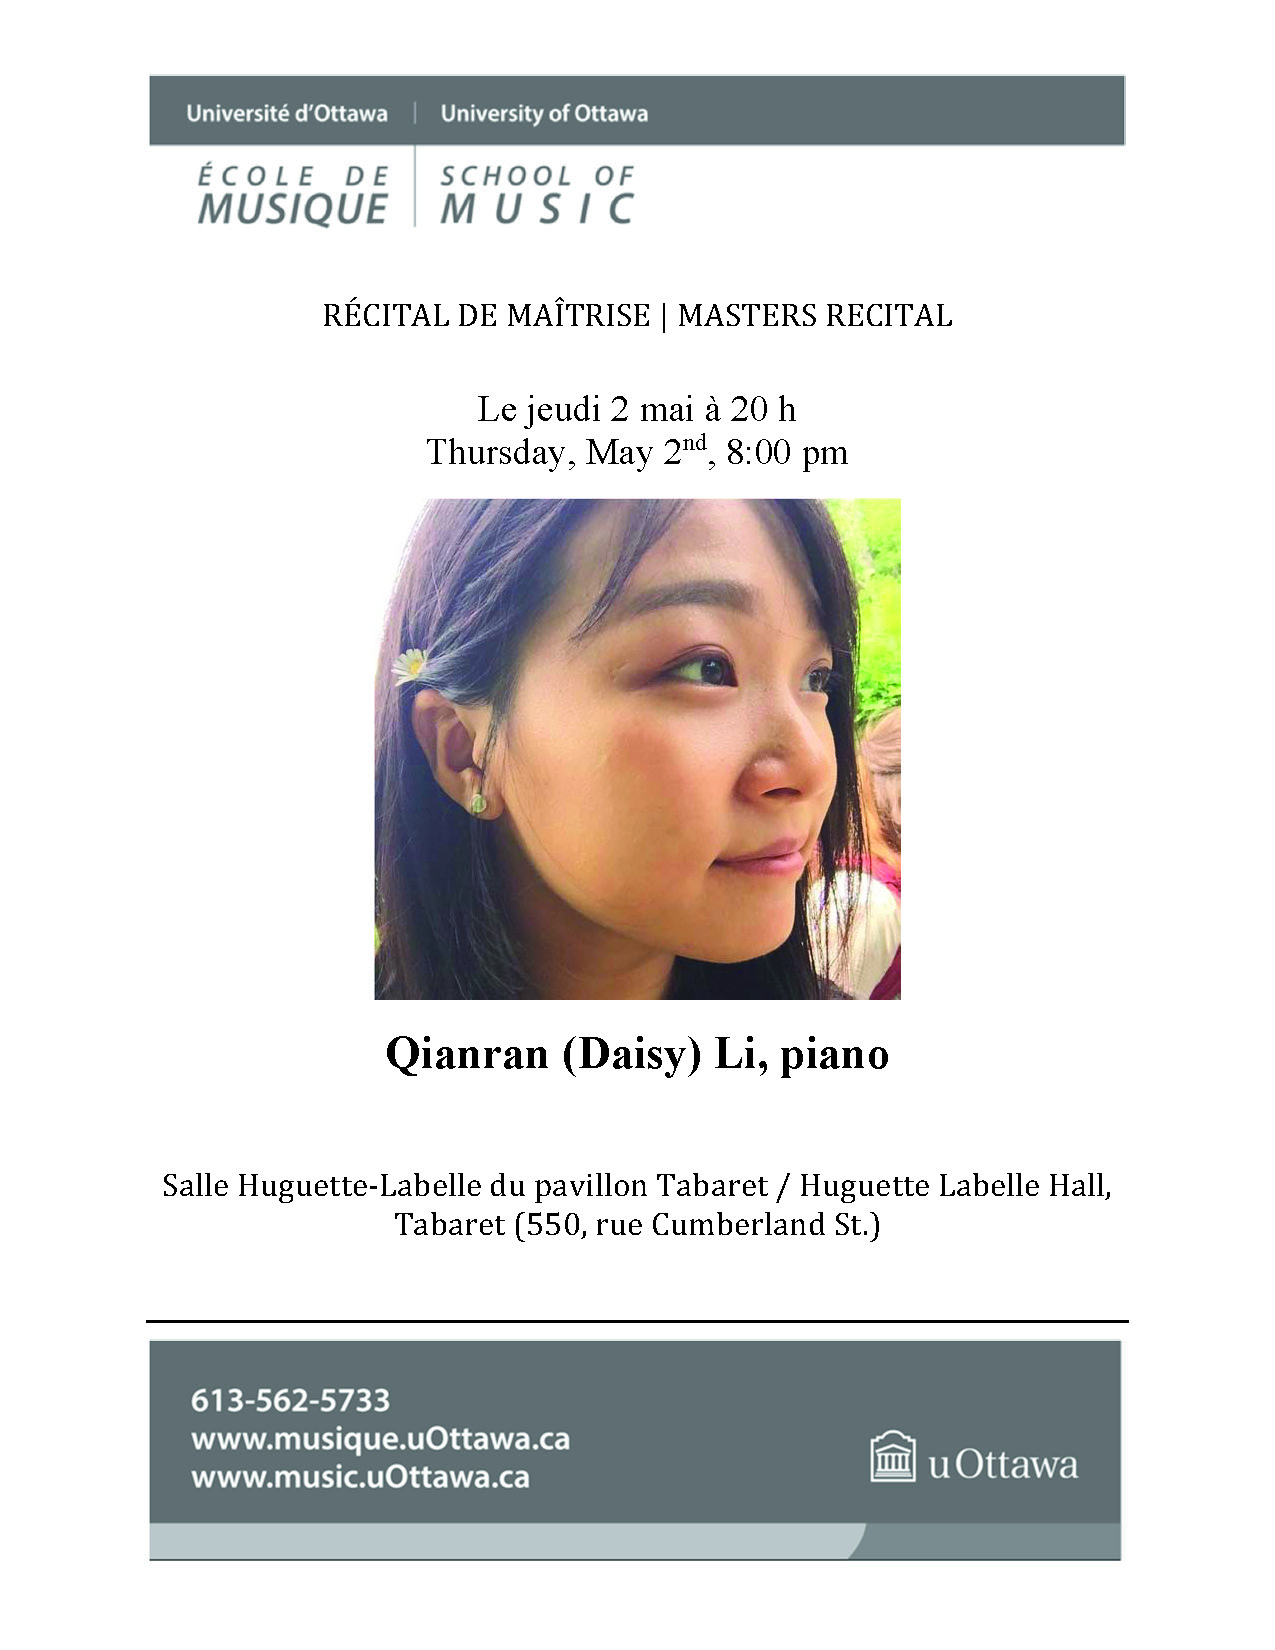 Recital program for Daisy Li, p. 1